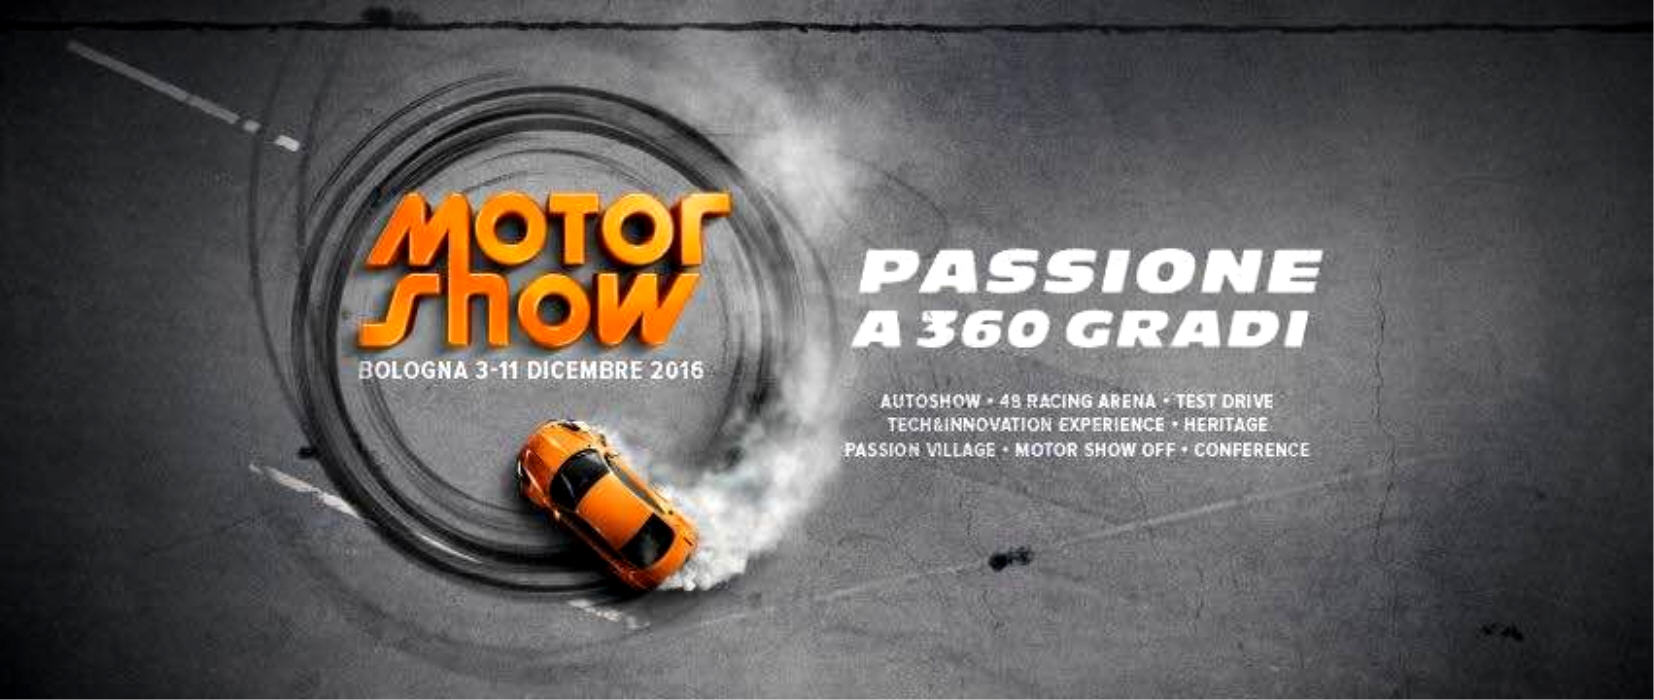 Motor Show 2016: Apertura del ticketing on line